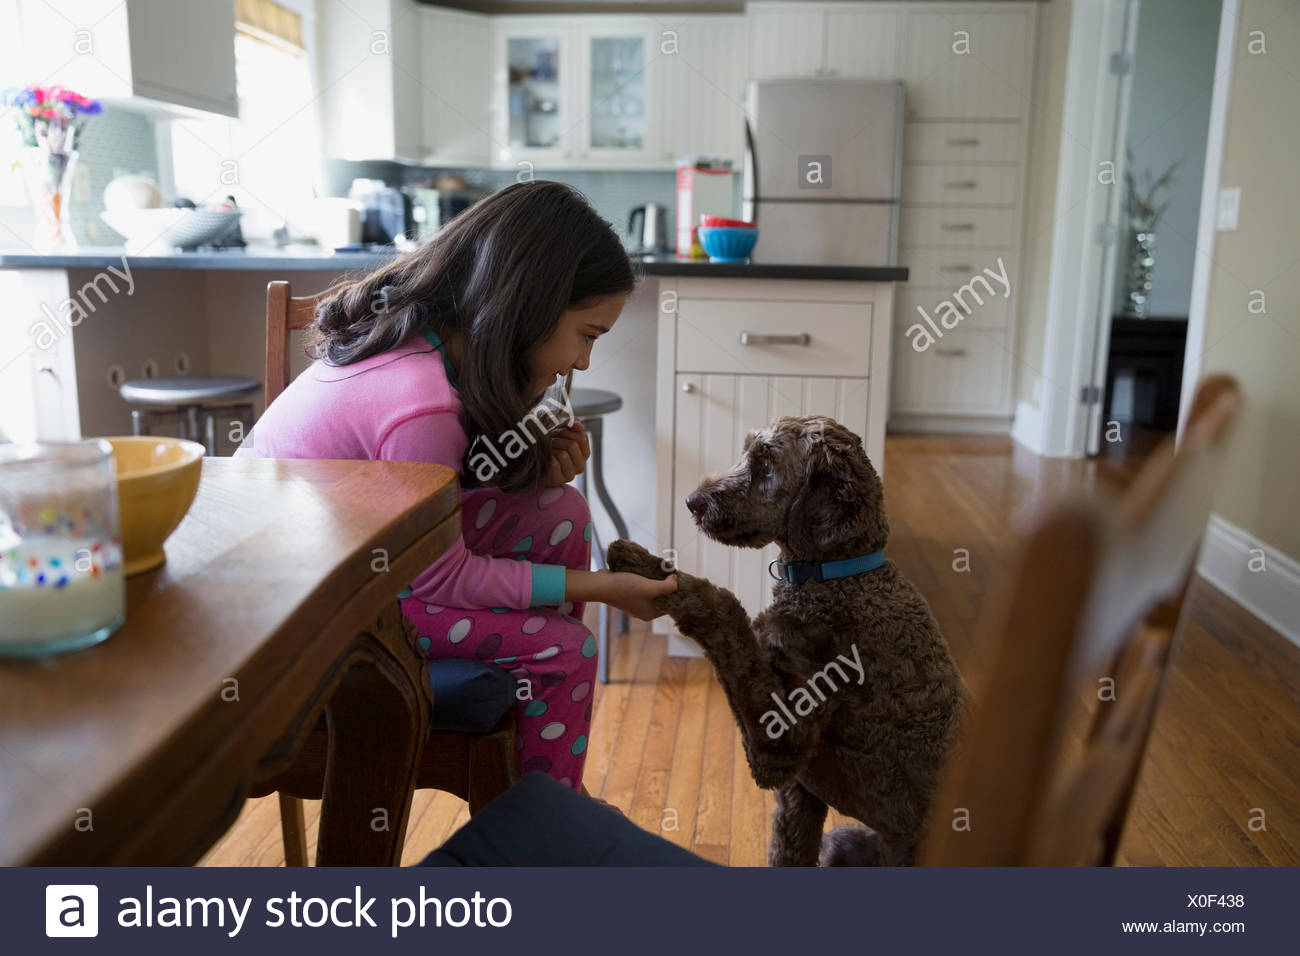 Girl shaking paw with dog in kitchen - Stock Image